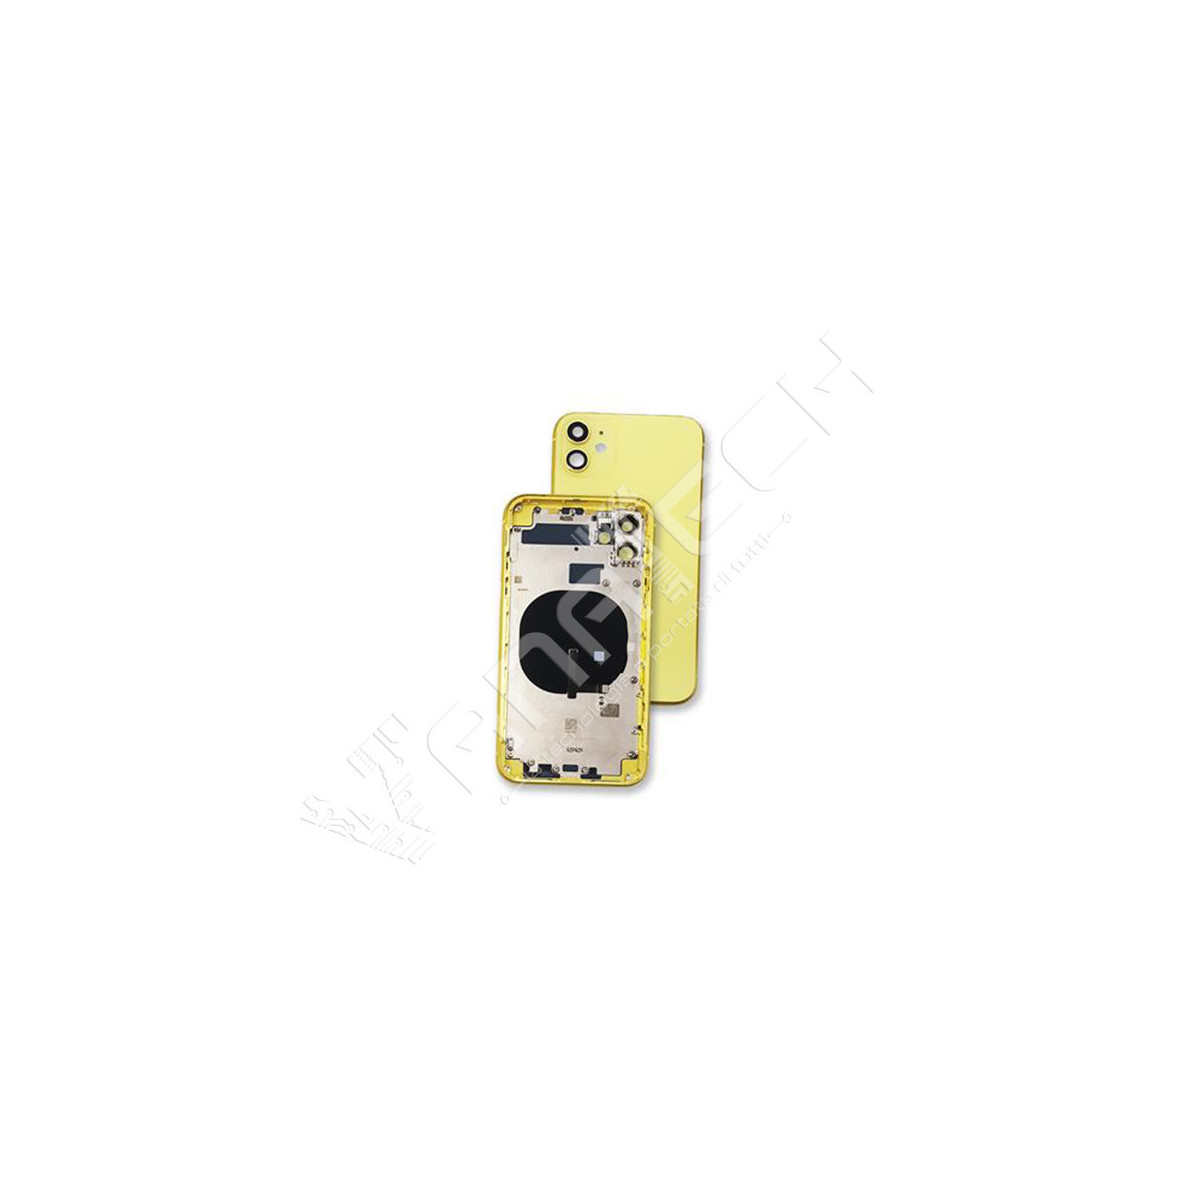 PC DESKTOP COMPLETO CPU INTEL G4400 4GB RAM DDR4 2400MHz 1TB 1000GB HARD DISK